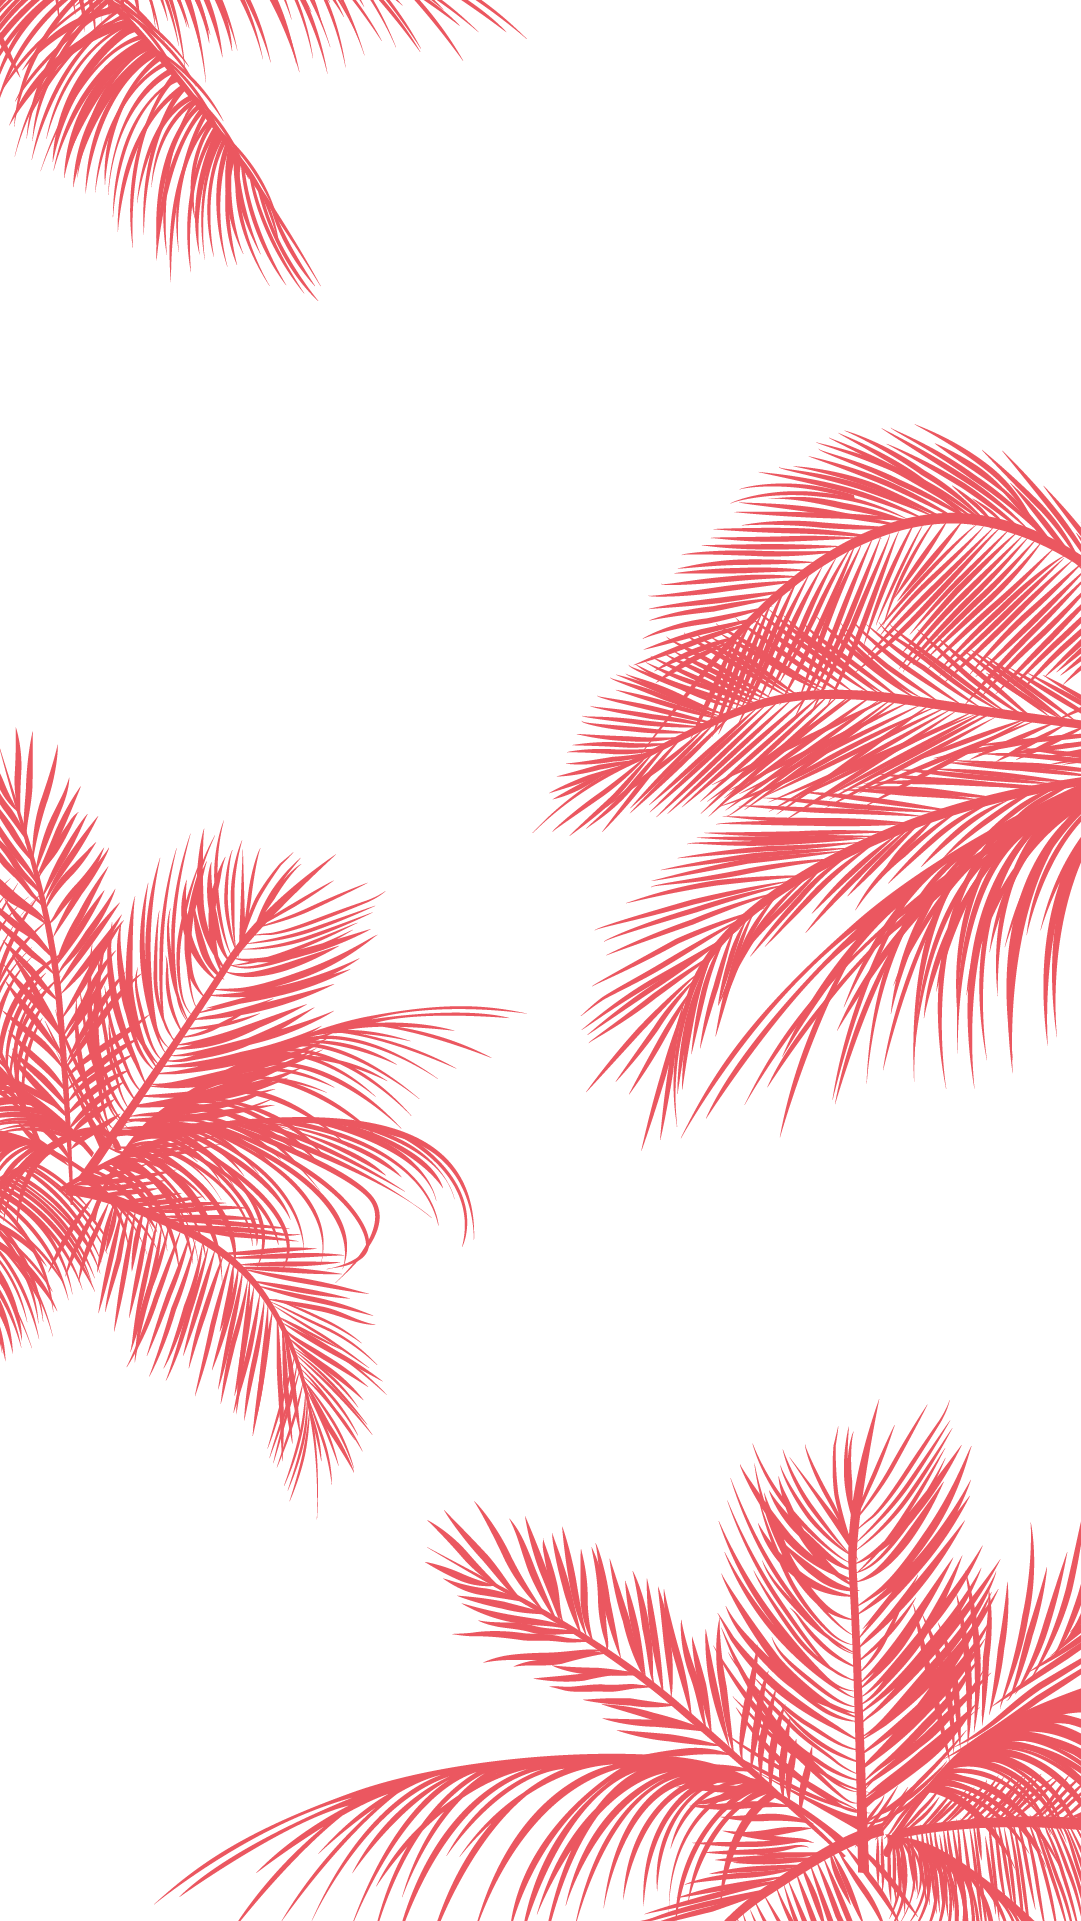 Coral-pink-white-palm-trees-leaves-iphone-phone-wallpaper-background-lockscreen-wallpaper-wp4805528